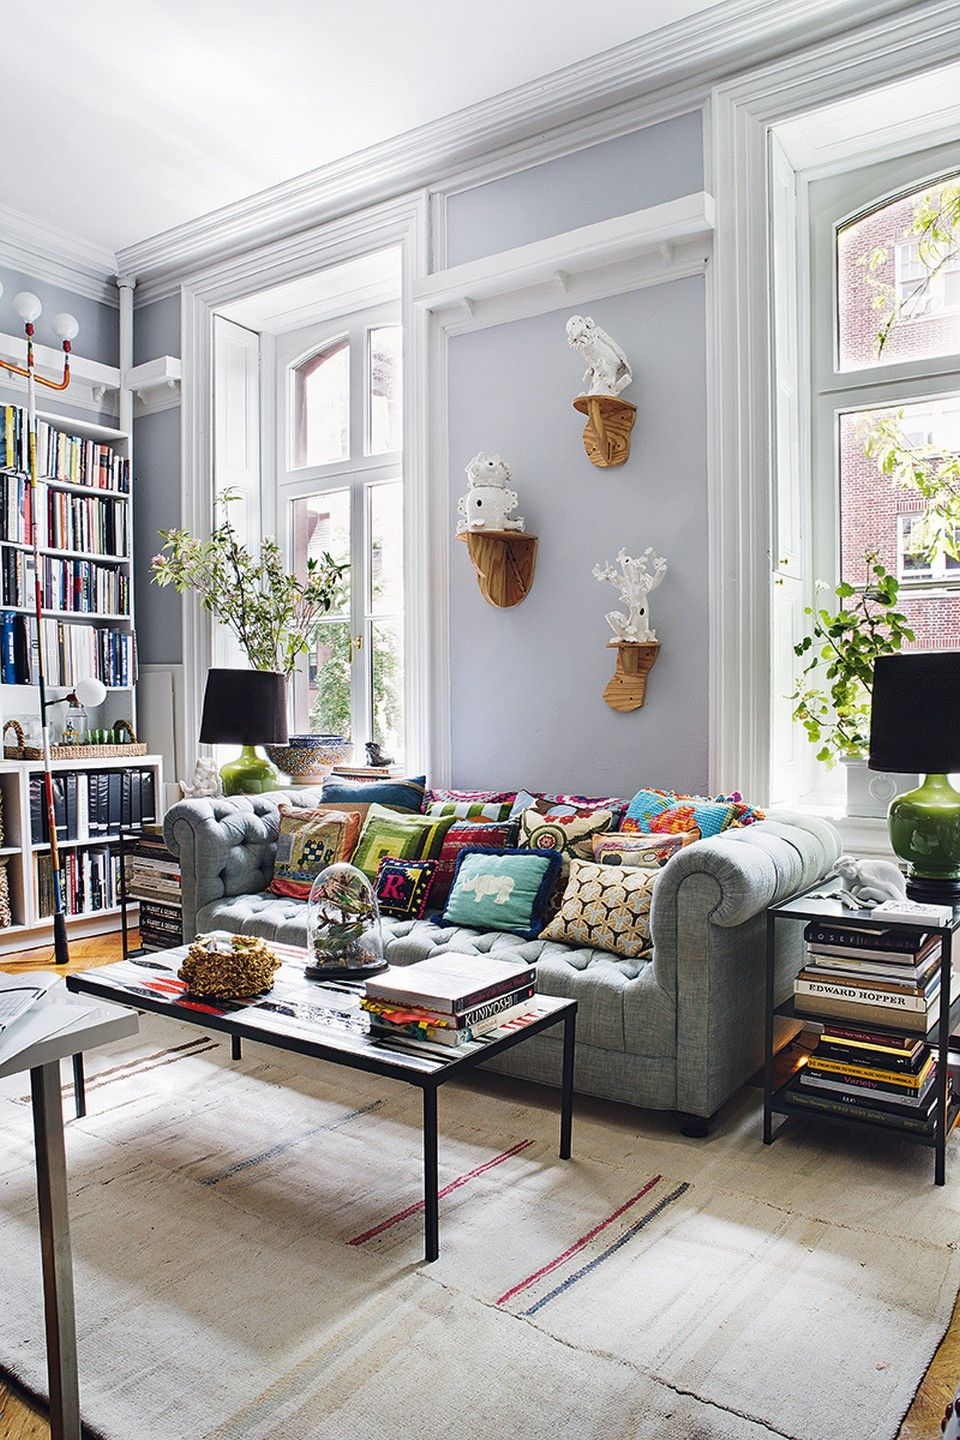 cool 2017 Bohemian Interior Design Trends 99 Amazing Tips and